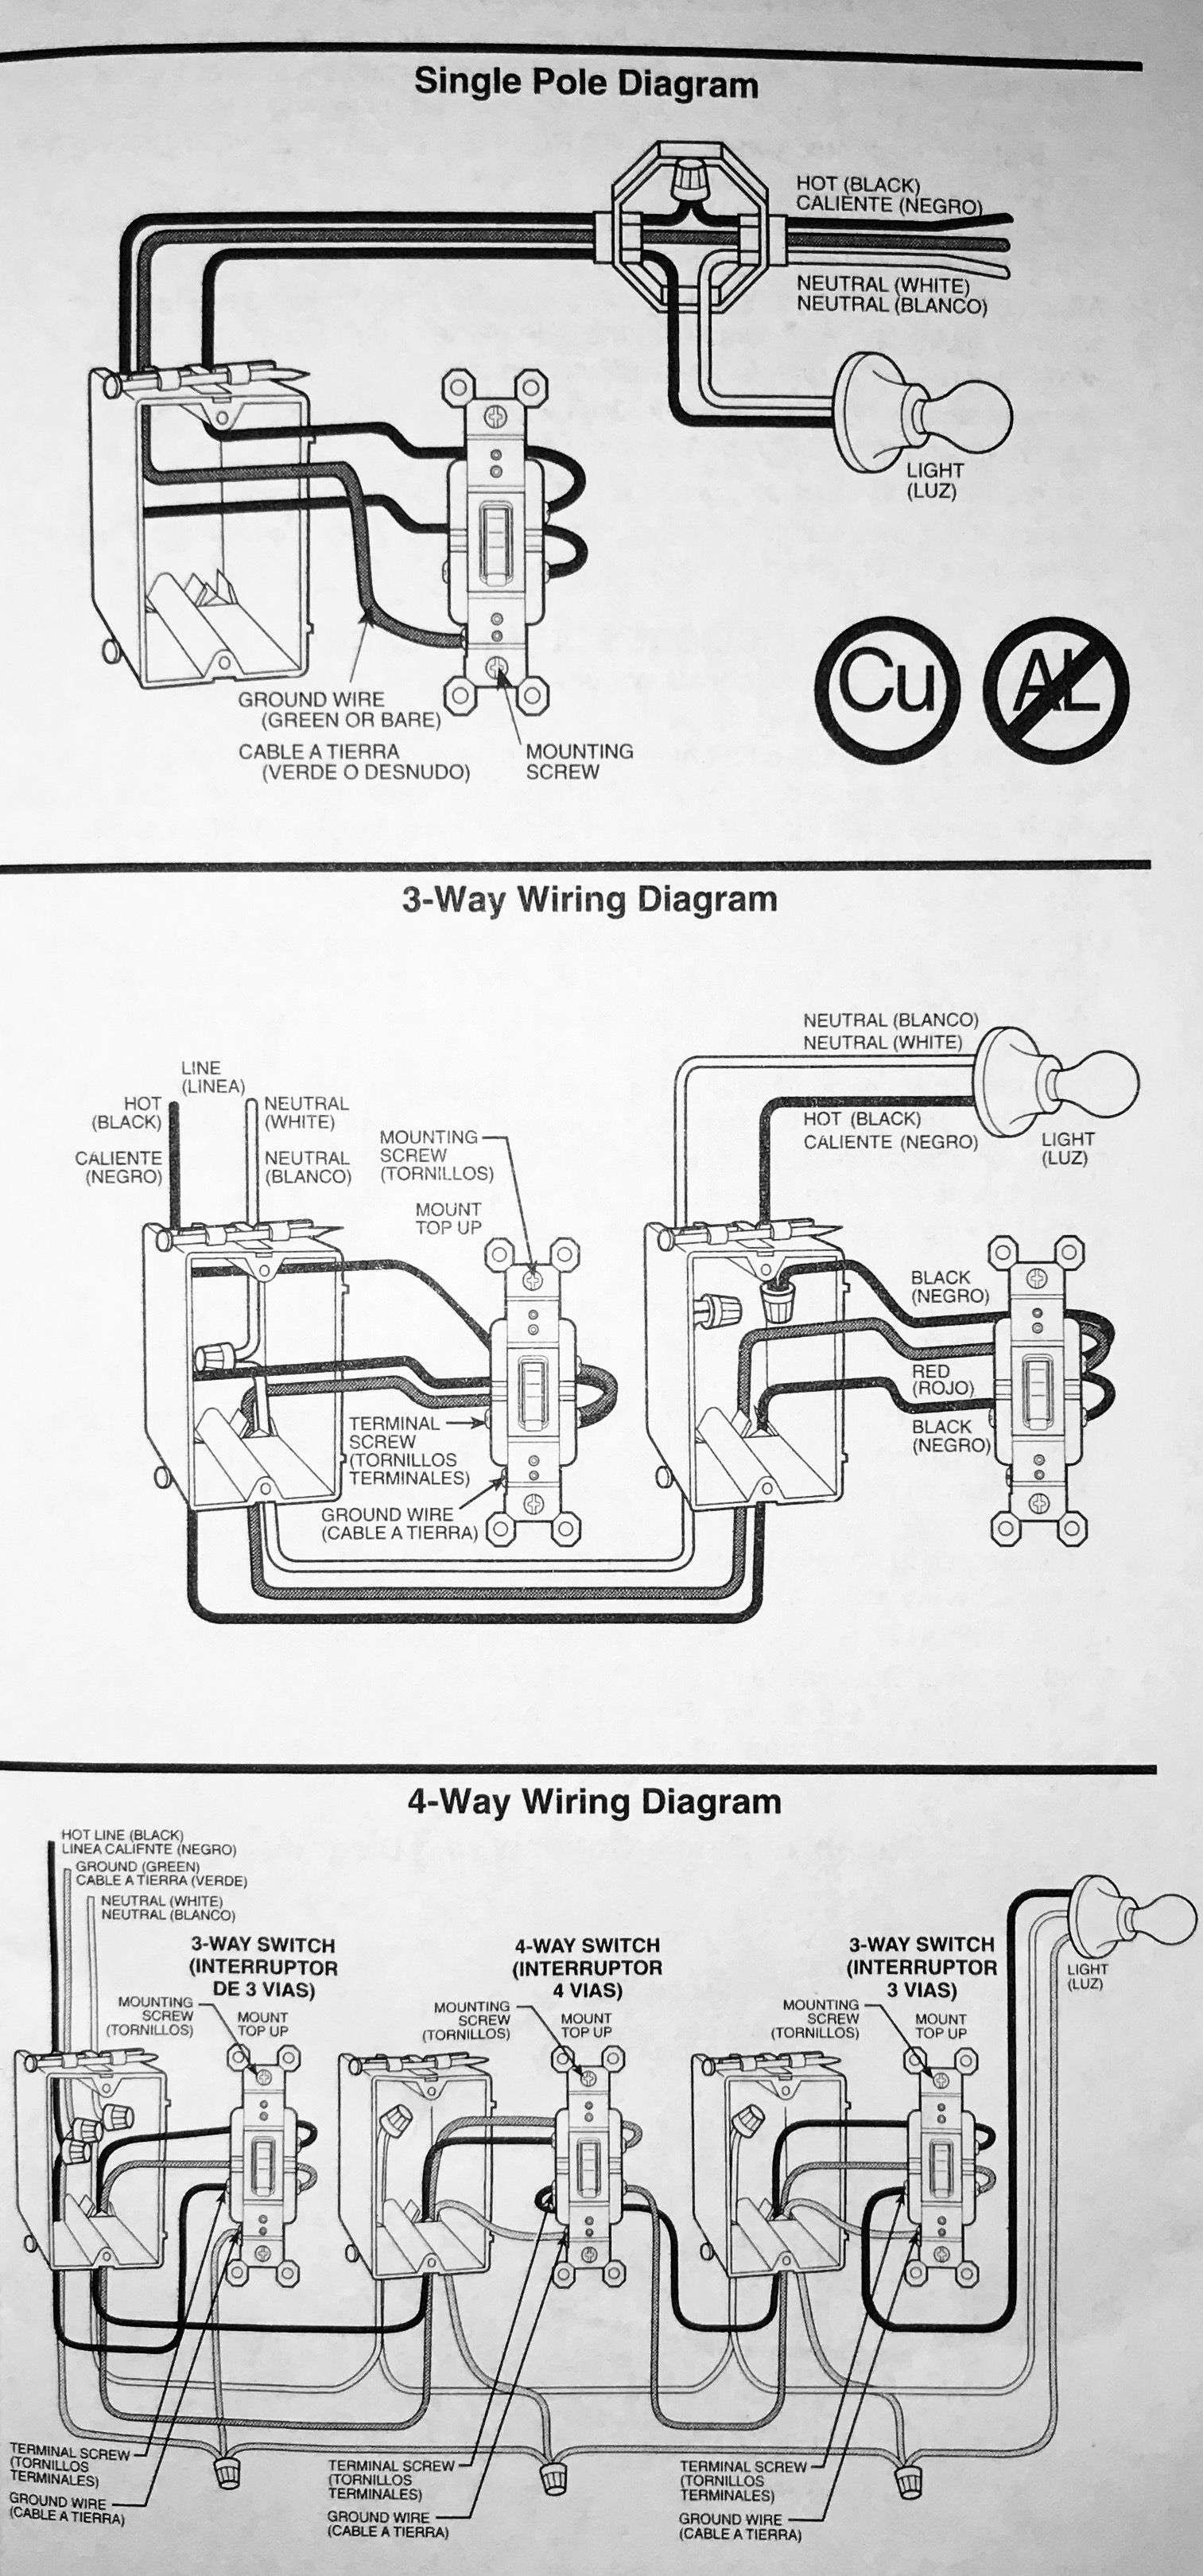 Wiring Diagram 3 Way Switch In 2020 Electrical Wiring Electrical Switch Wiring Electrical Switches